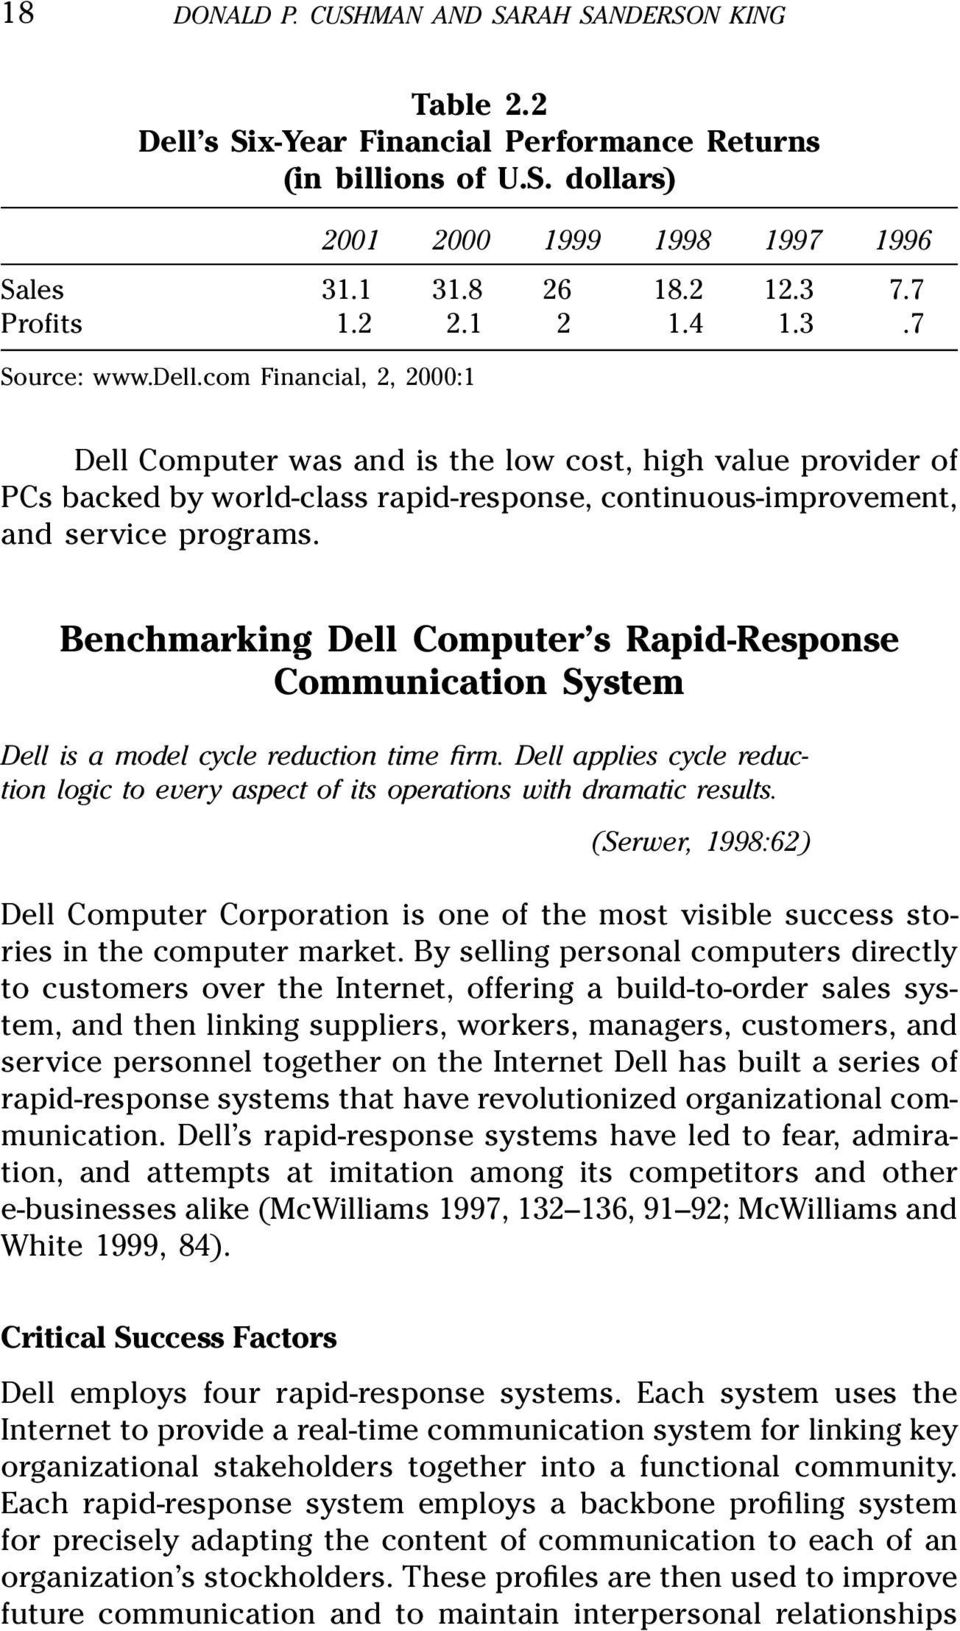 com Financial, 2, 2000:1 Dell Computer was and is the low cost, high value provider of PCs backed by world-class rapid-response, continuous-improvement, and service programs.